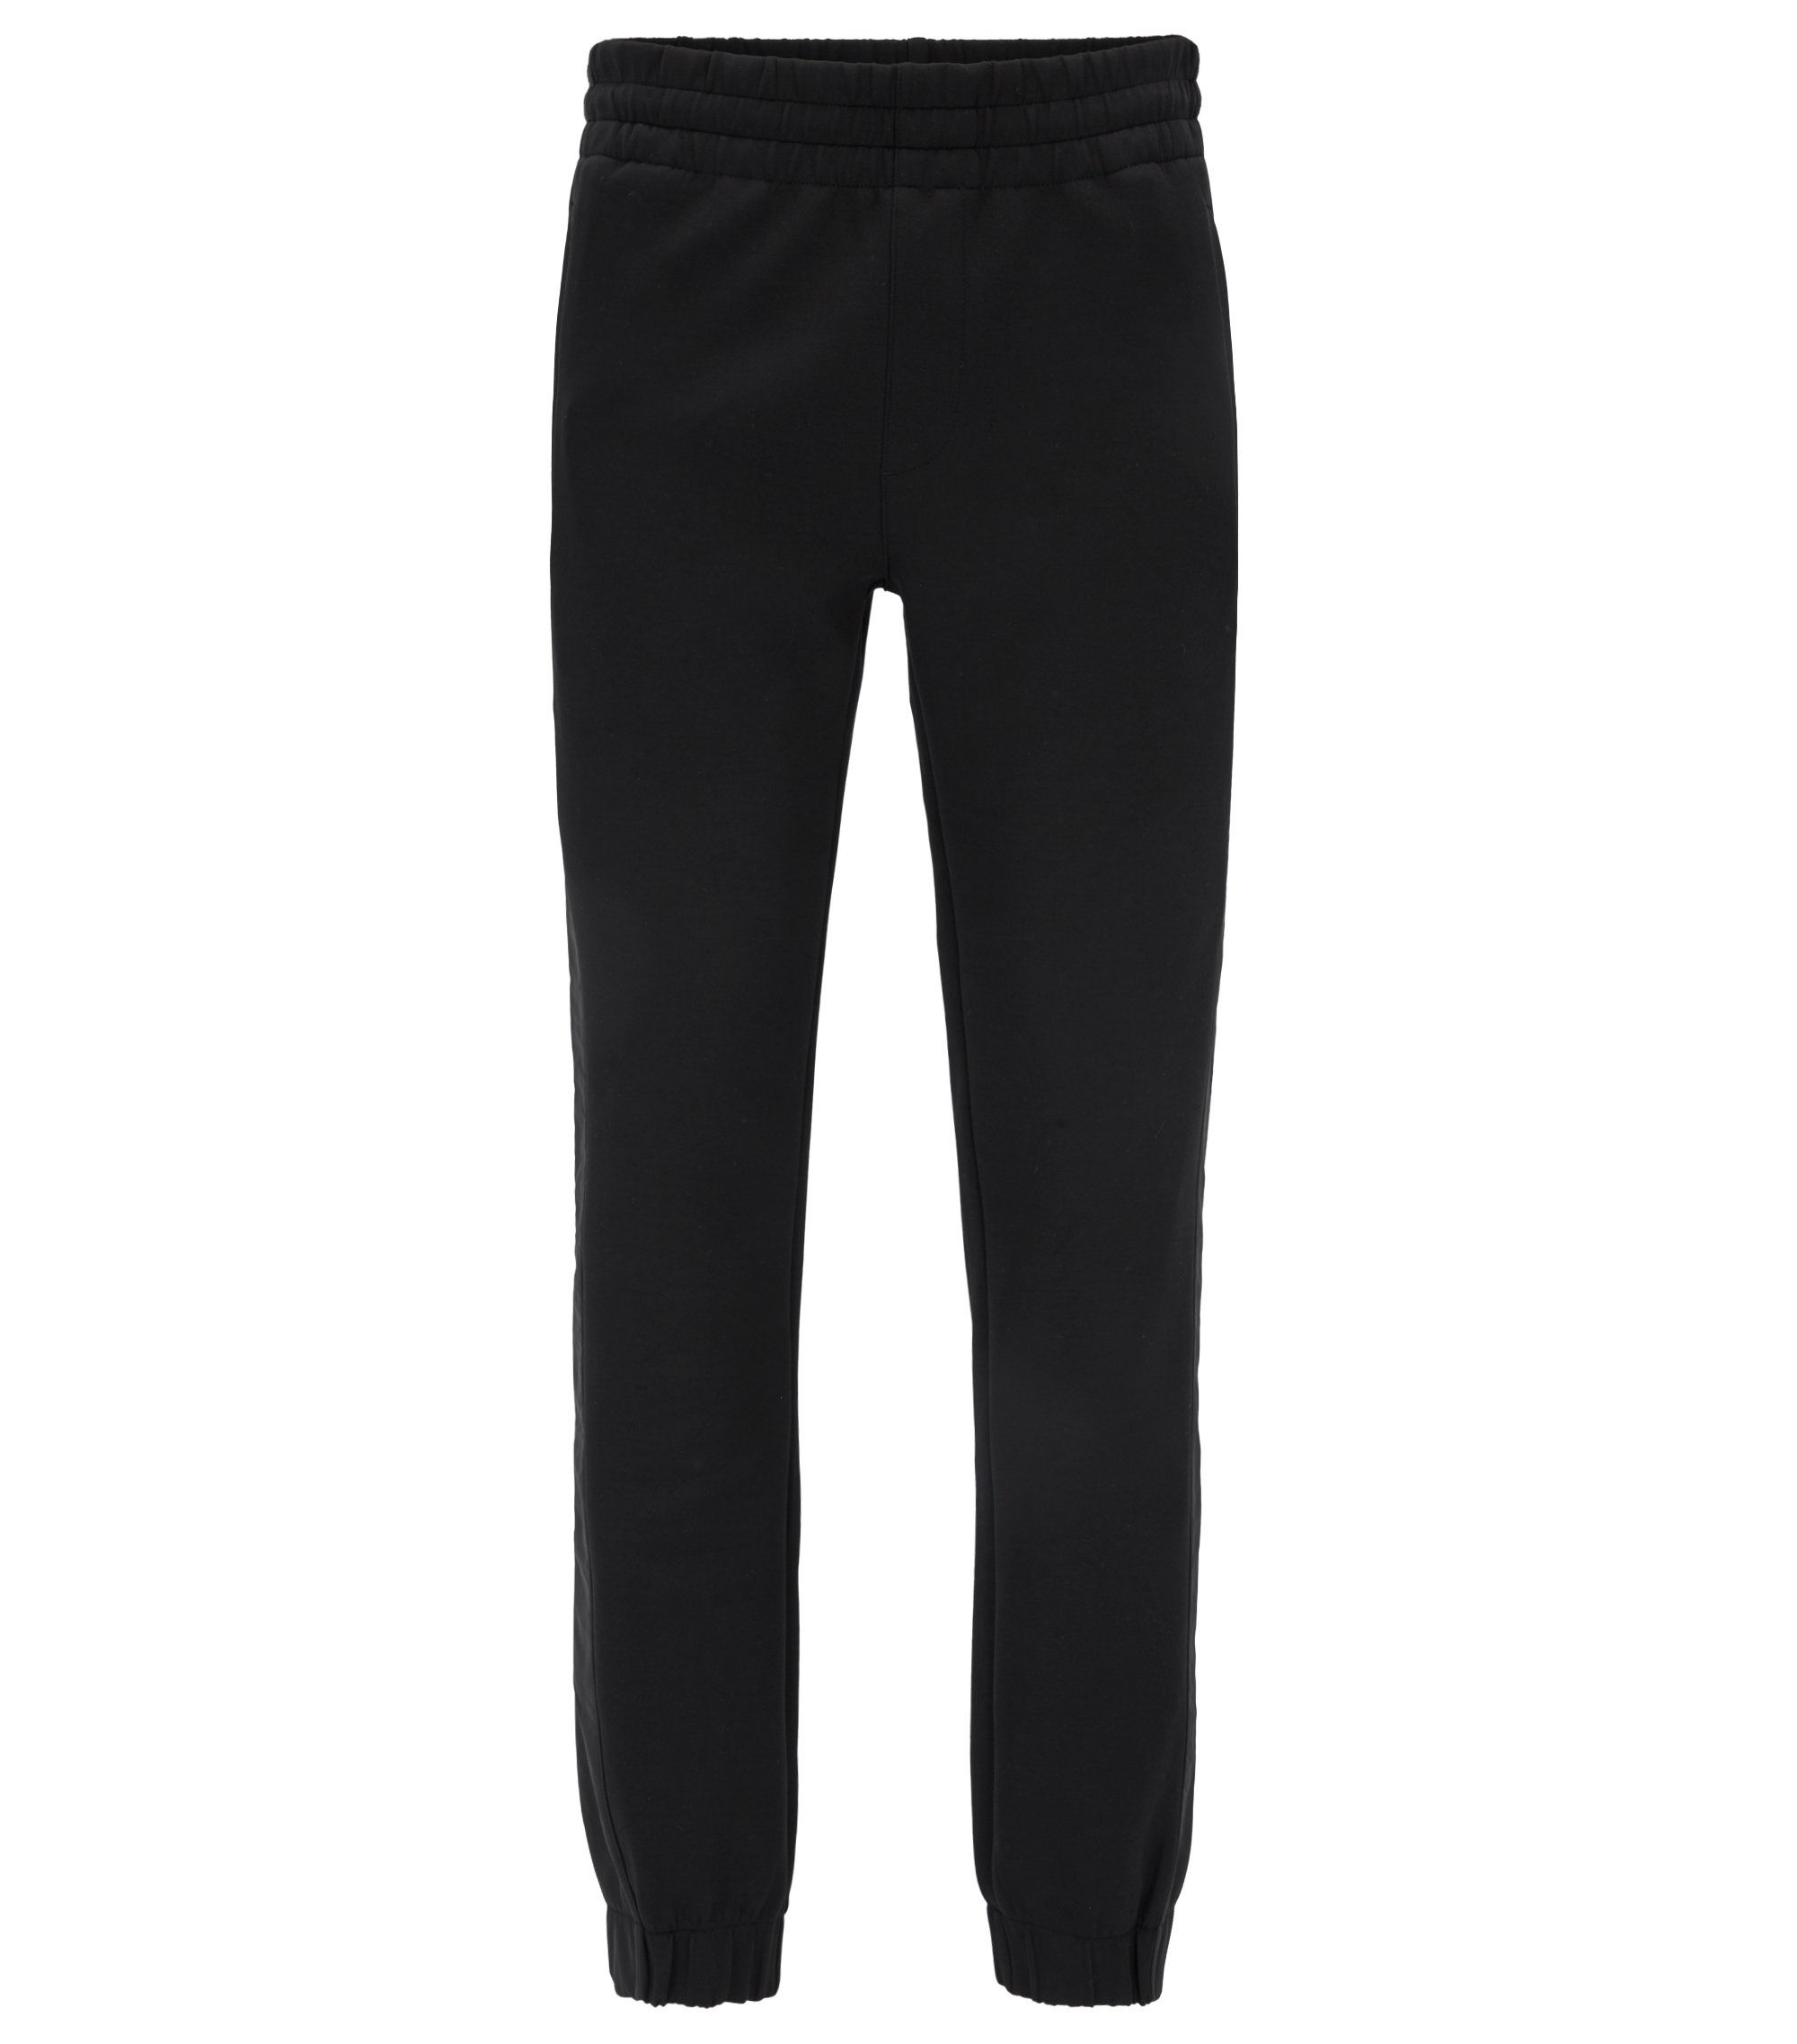 Mercedes-Benz cuffed jersey trousers in slim fit , Black